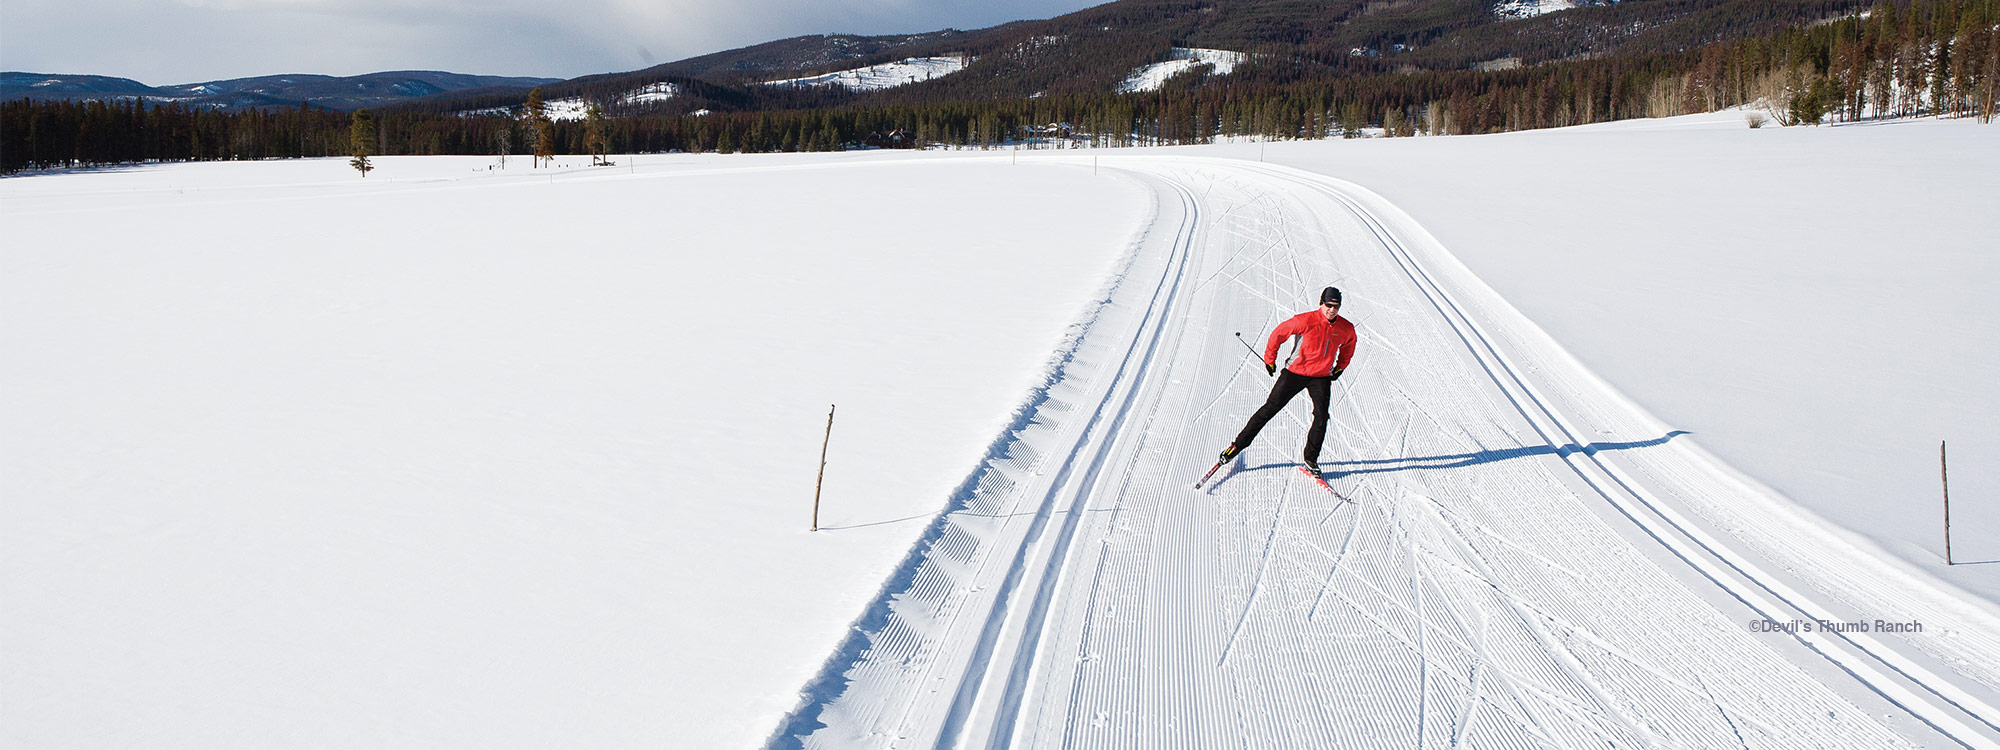 Cross Country Skis Nordic Skis The House Com >> Cross Country And Skate Skiing In Winter Park Grand County